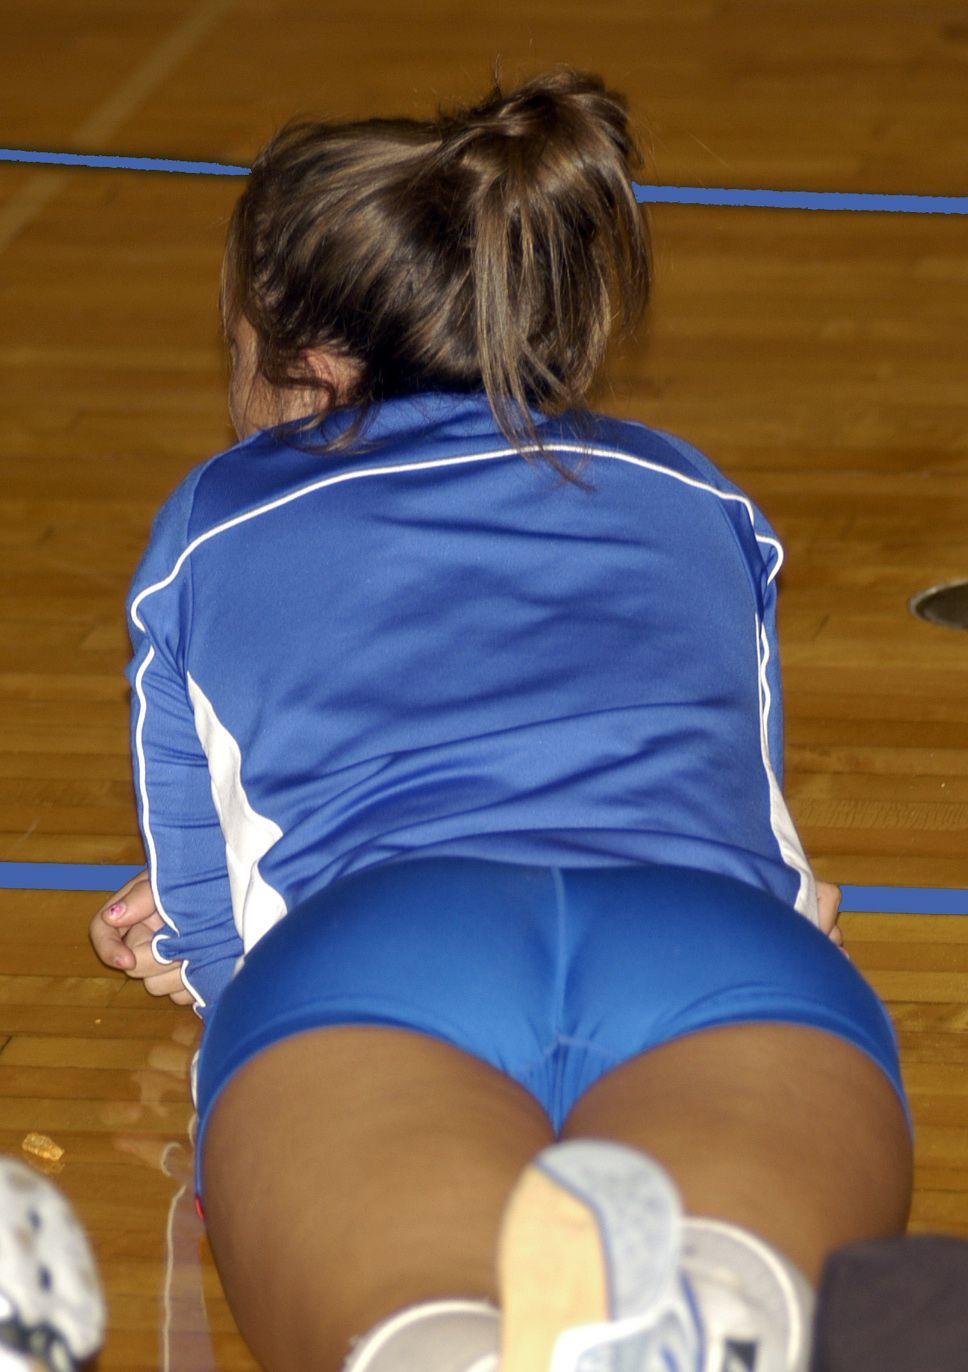 1000+ images about Sporty on Pinterest | Volleyball girls, Nba ...